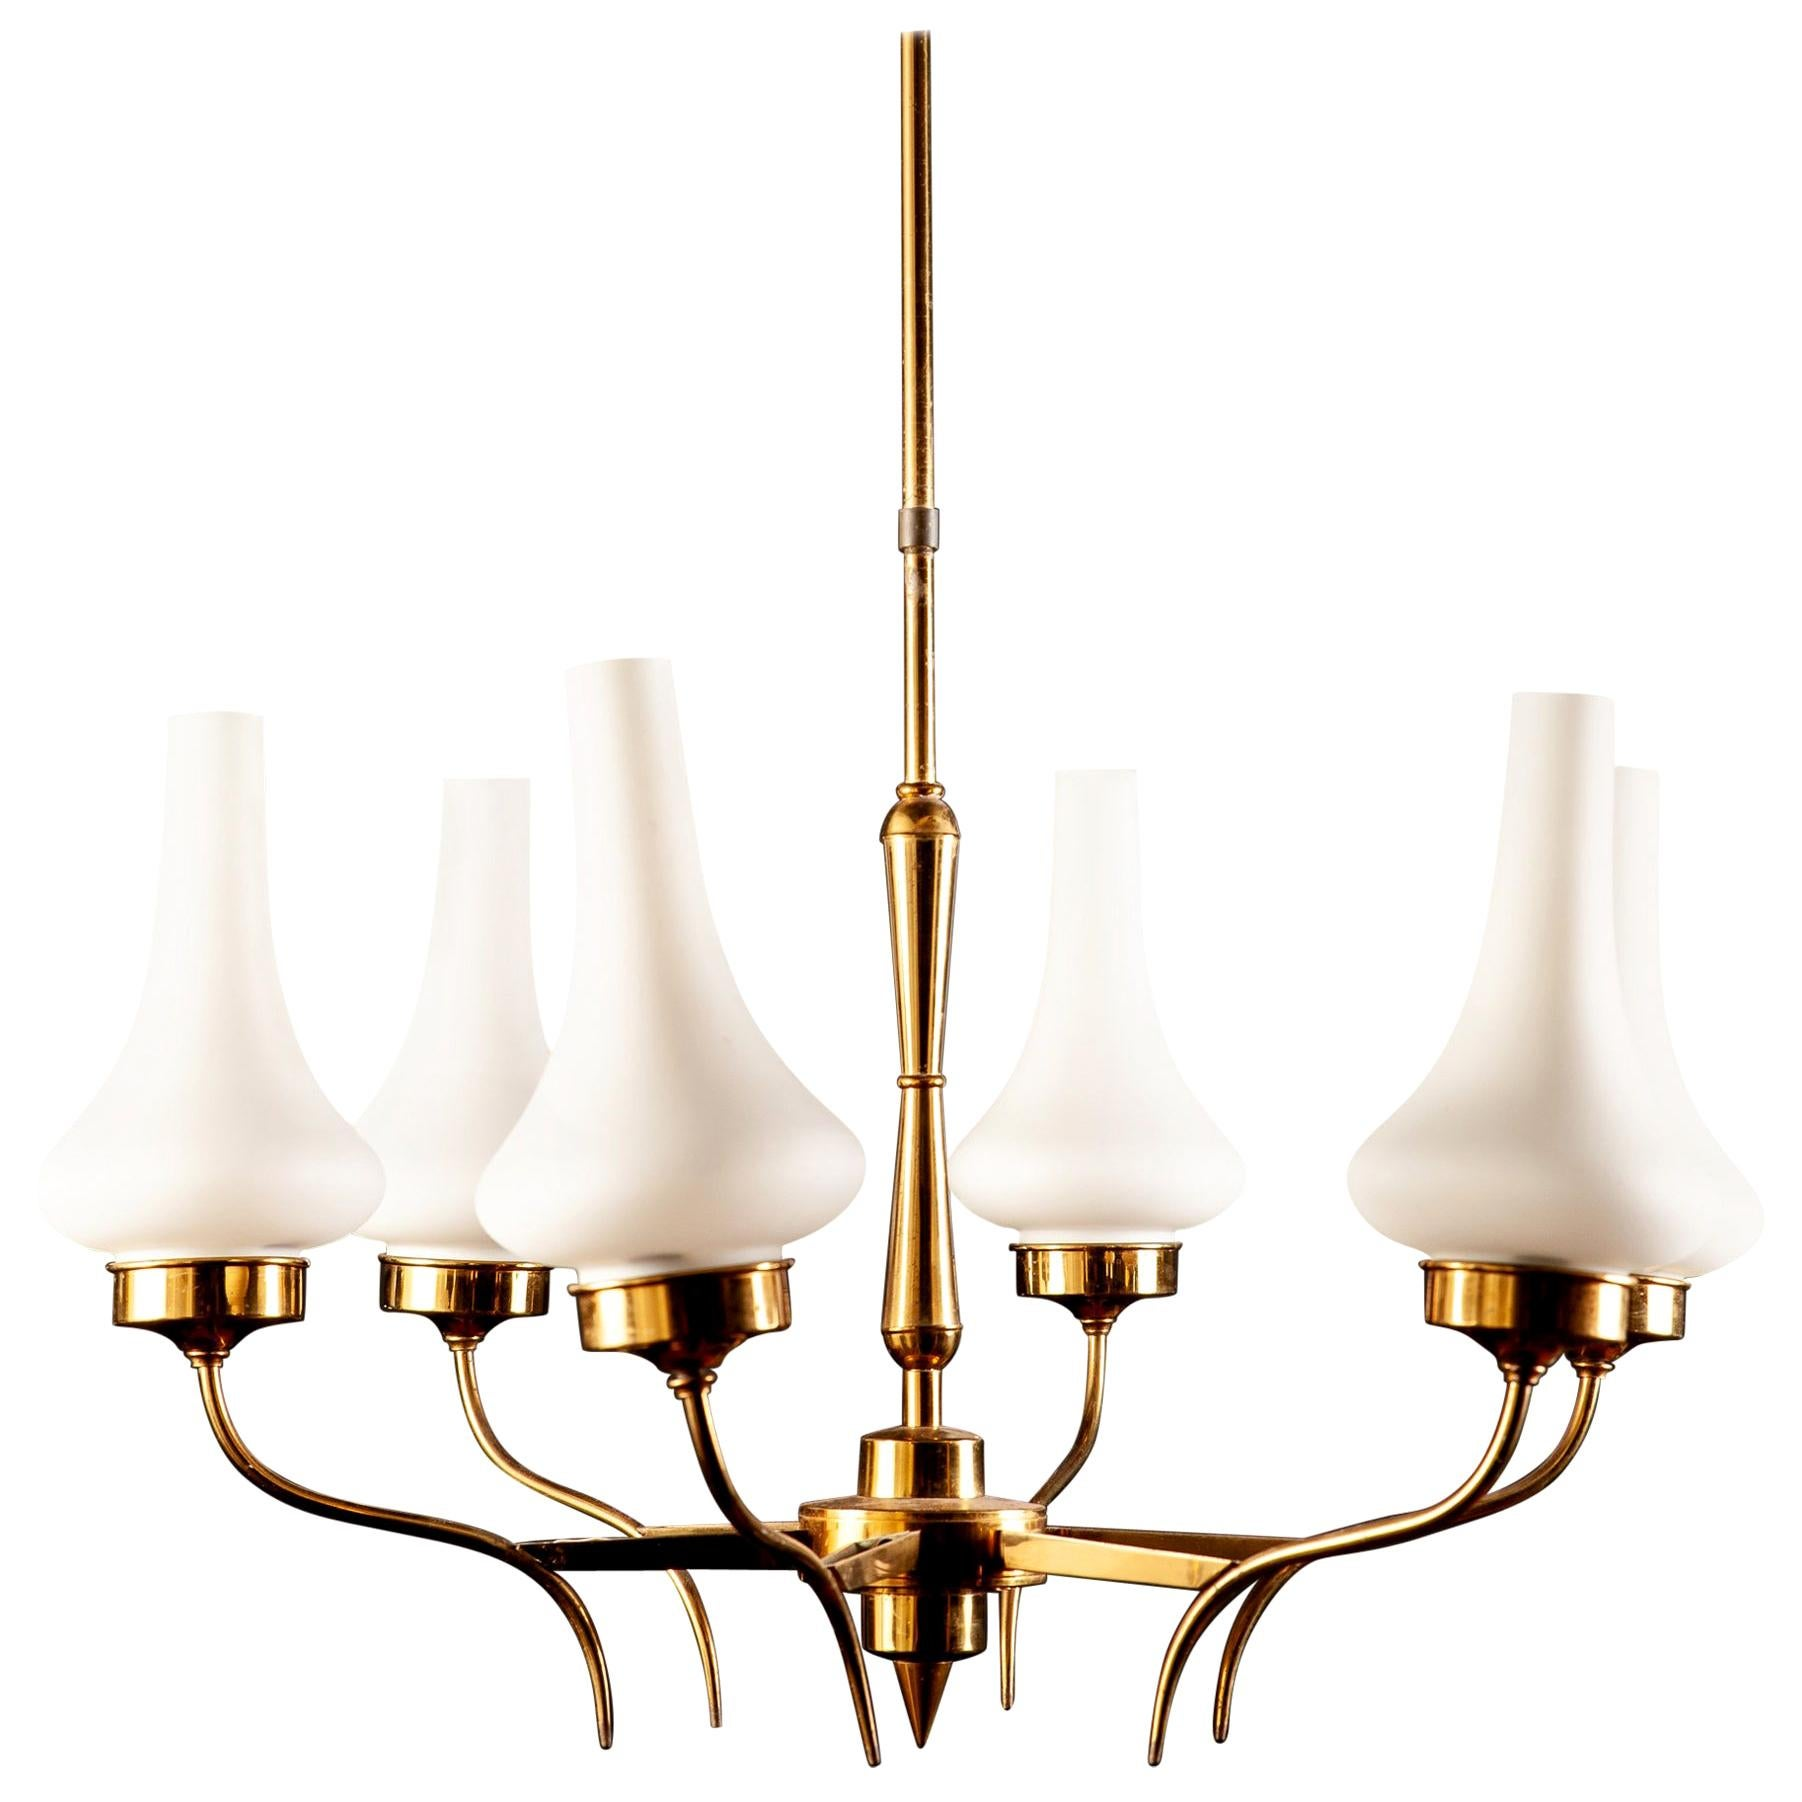 Stilnovo Attributed Brass and Murano Glass Chandelier, Italy, 1960s